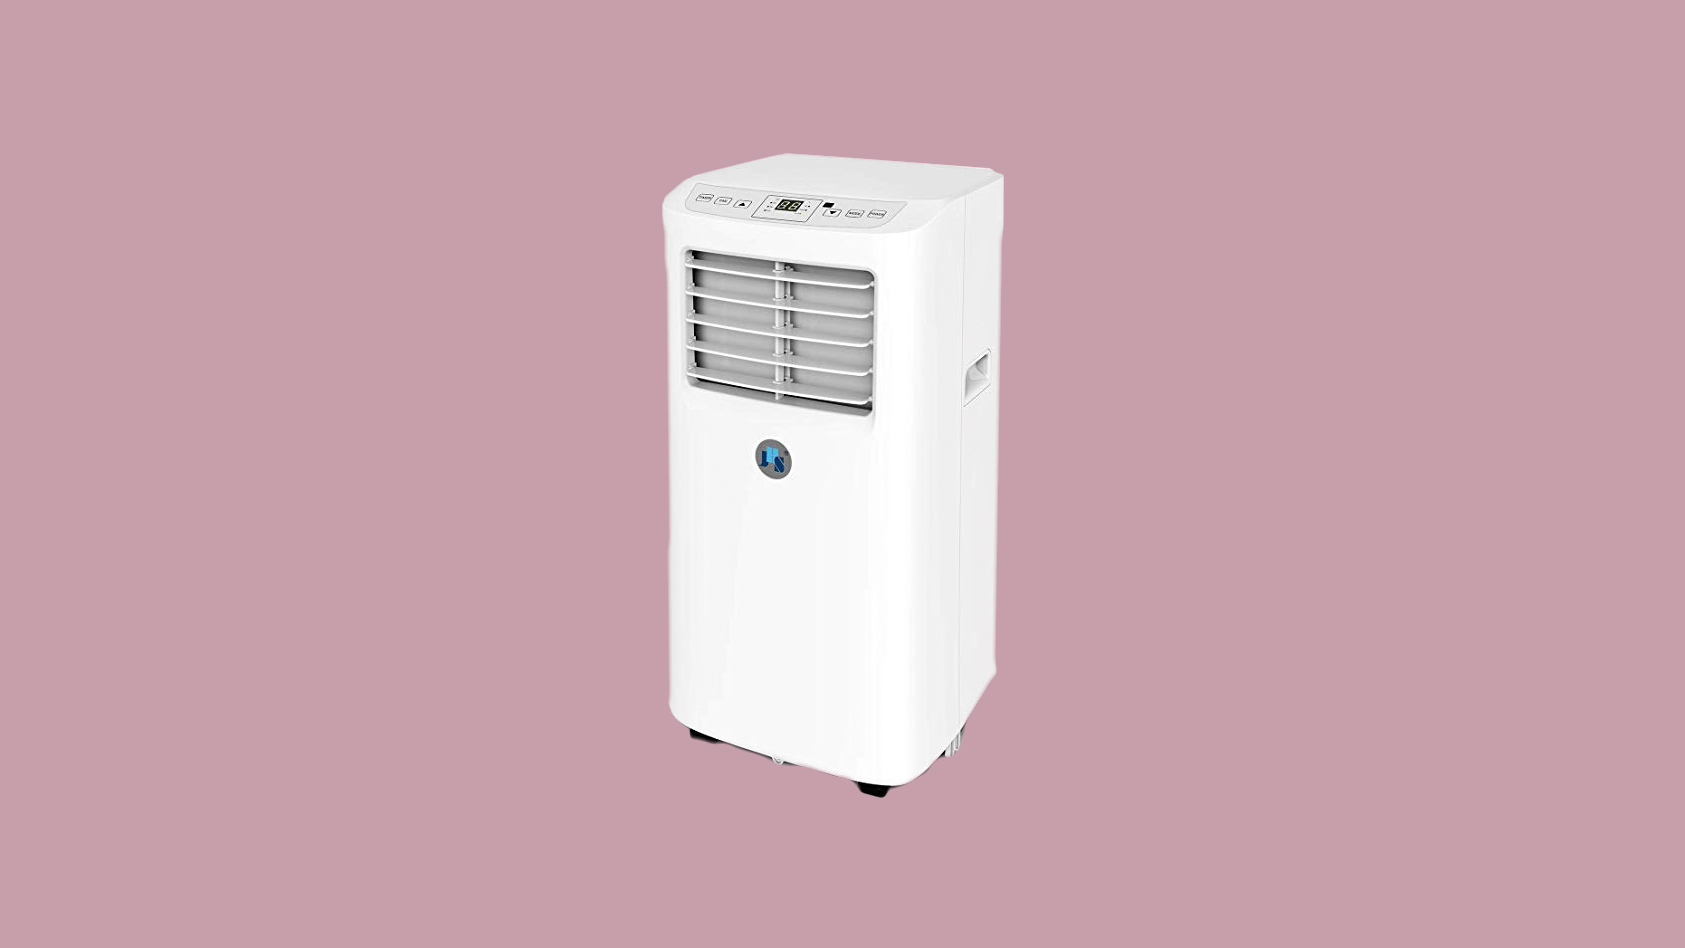 jhs small portable air conditioner